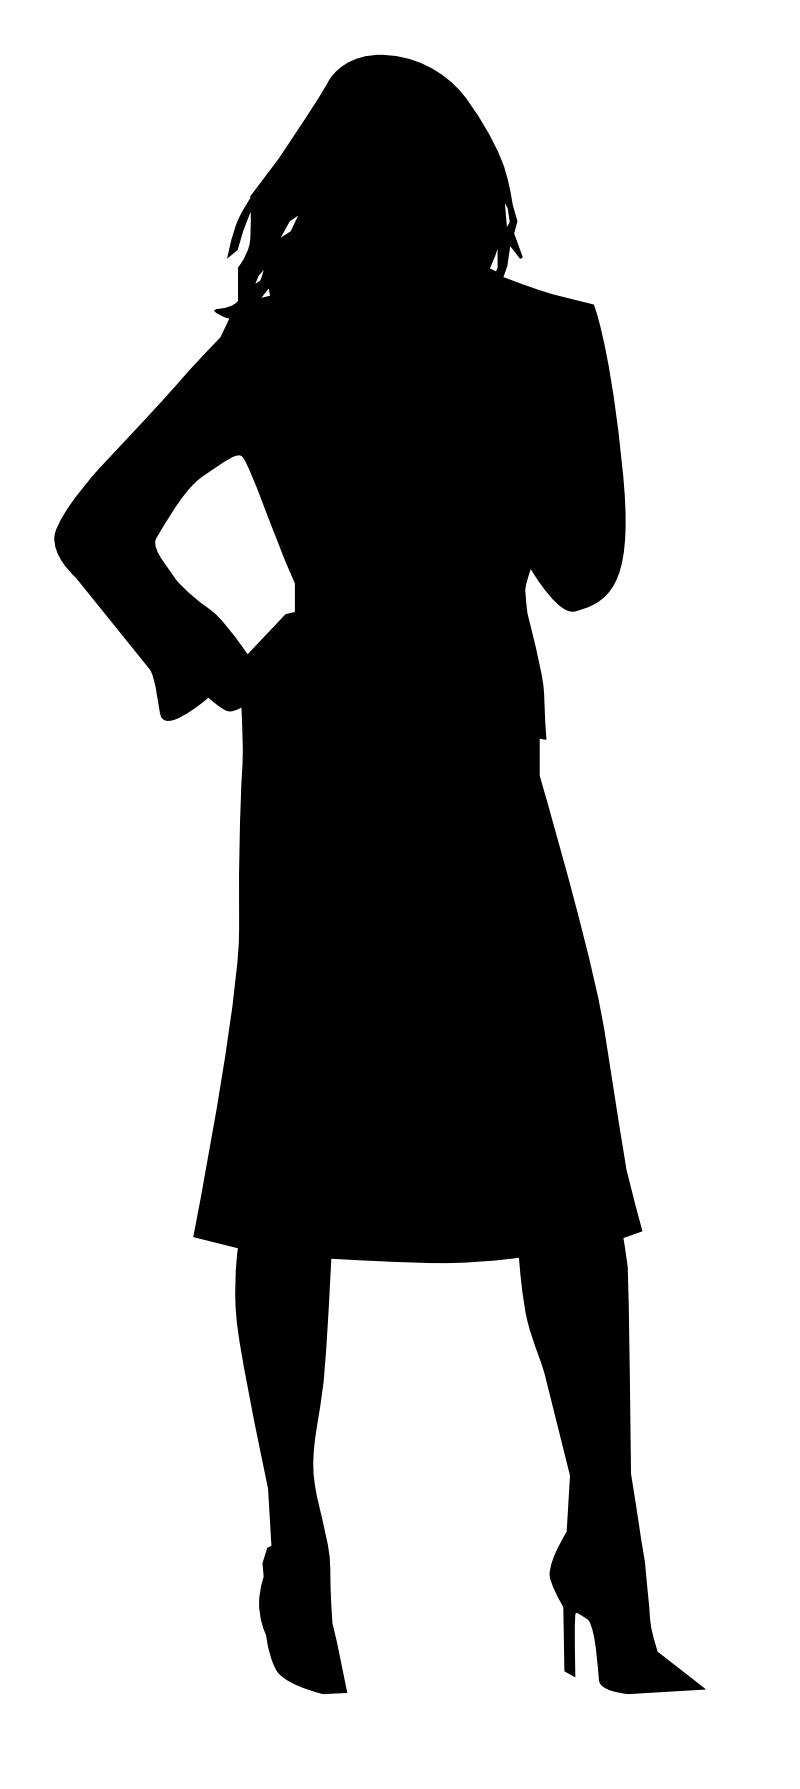 Cinderella silhouette outline at. Exercising clipart black and white